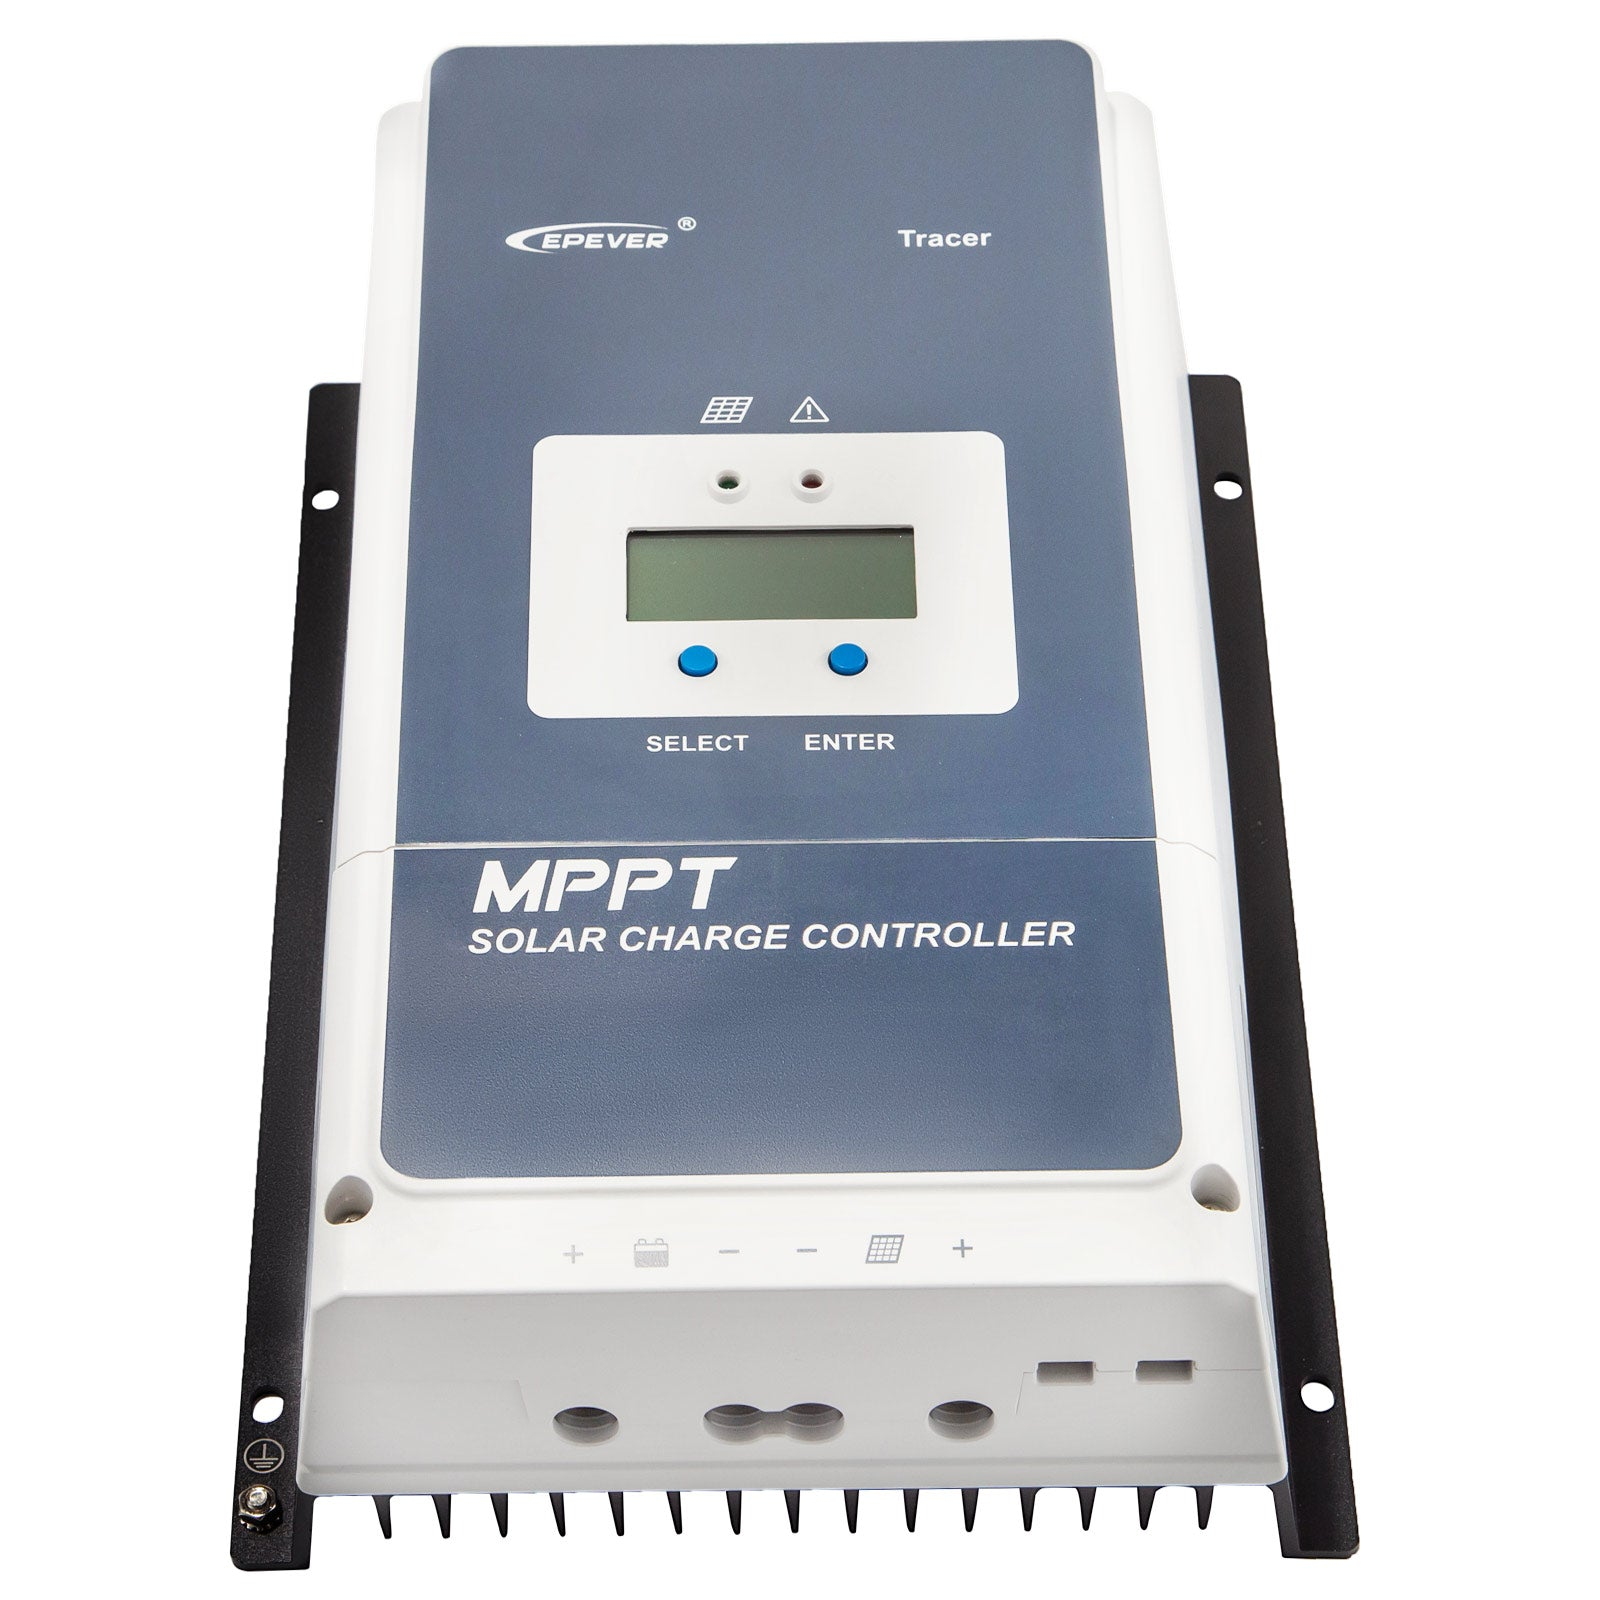 Solar Charge Controller, Mppt Charge Controller, 60 Amp, Solar Panel Controller